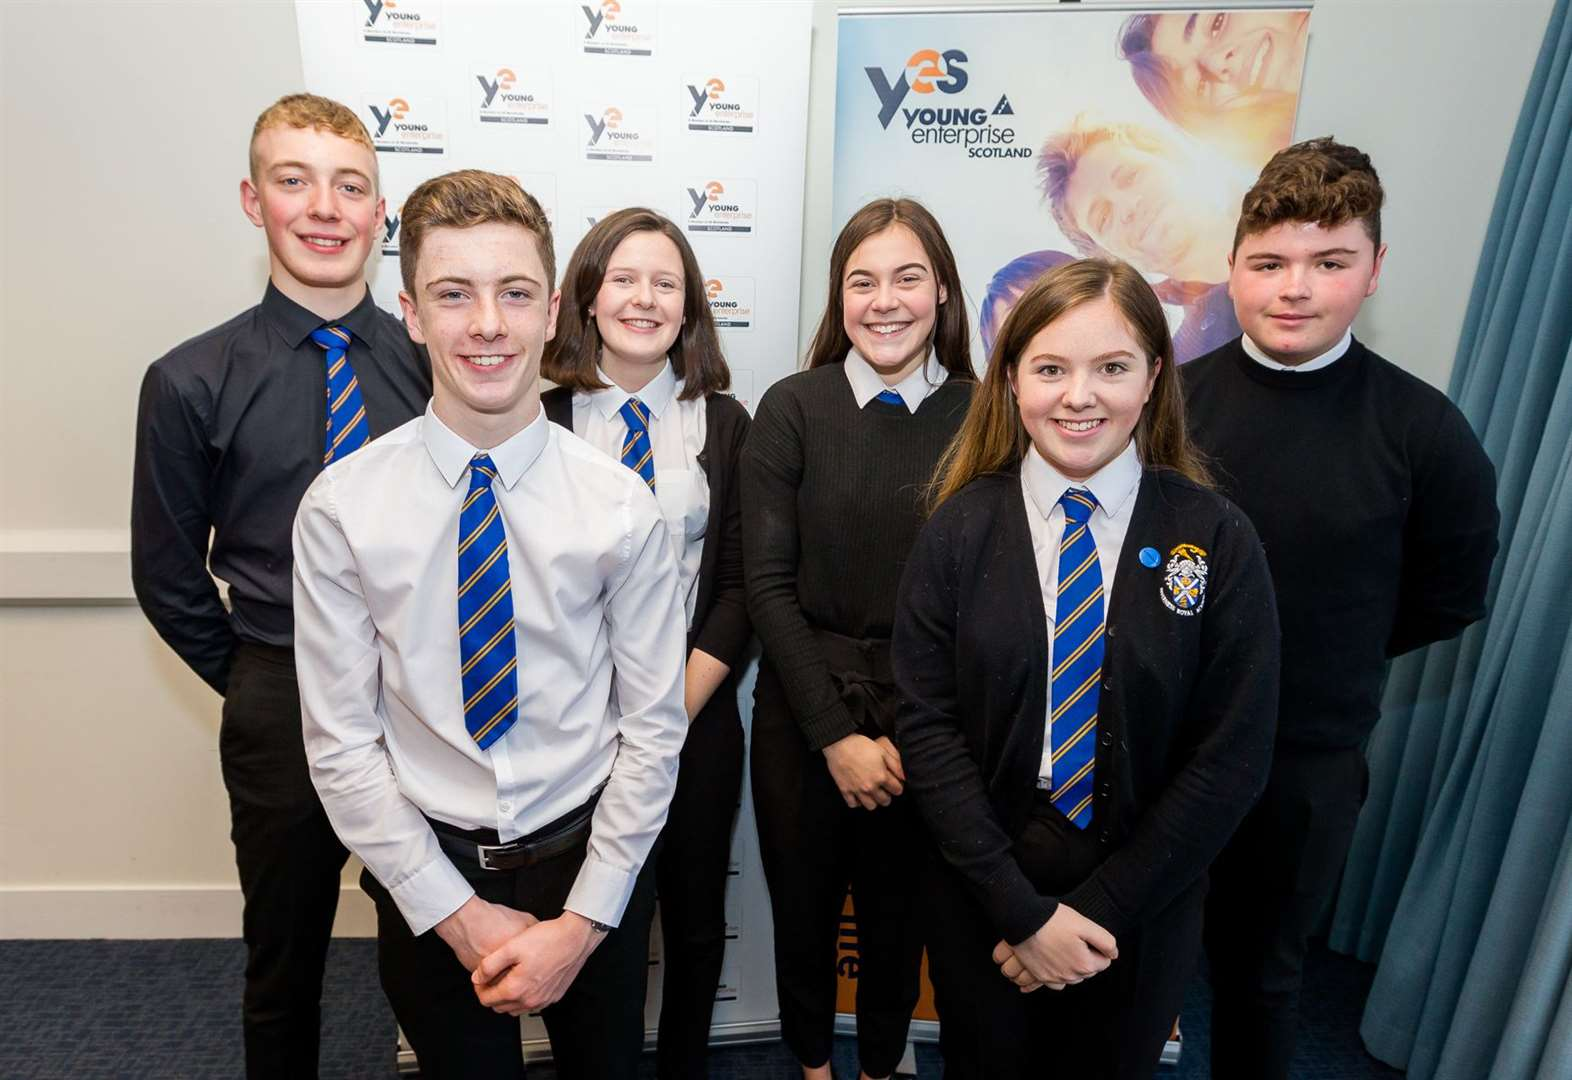 Inverness pupils brave Dragons' Den